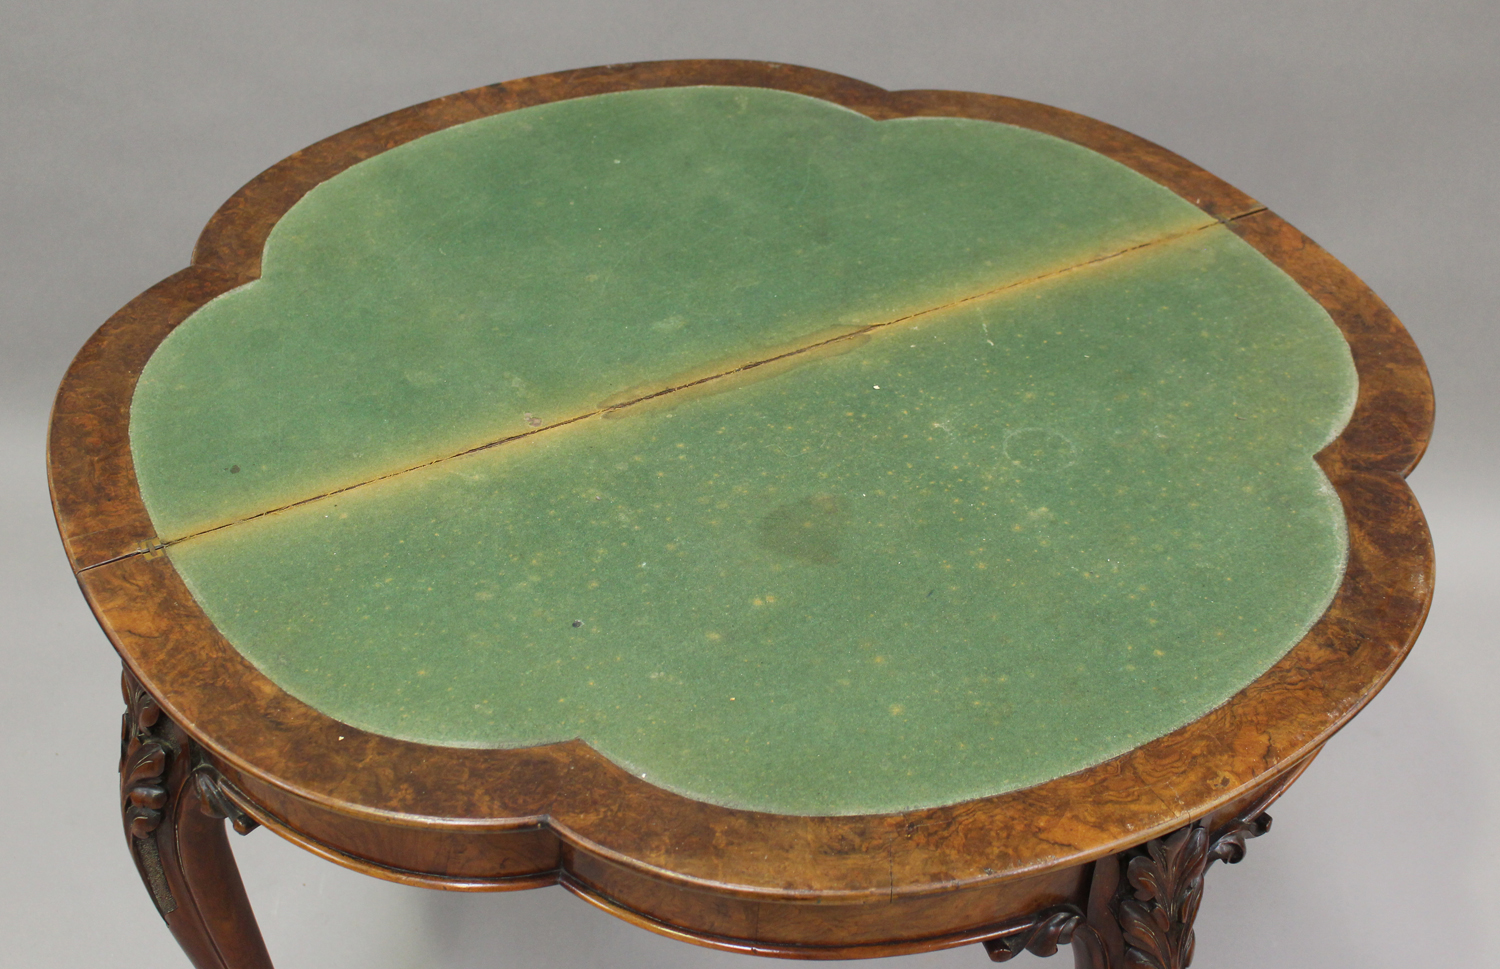 A mid-Victorian walnut fold-over card table with foliate inlaid decoration, on carved cabriole legs, - Image 3 of 6